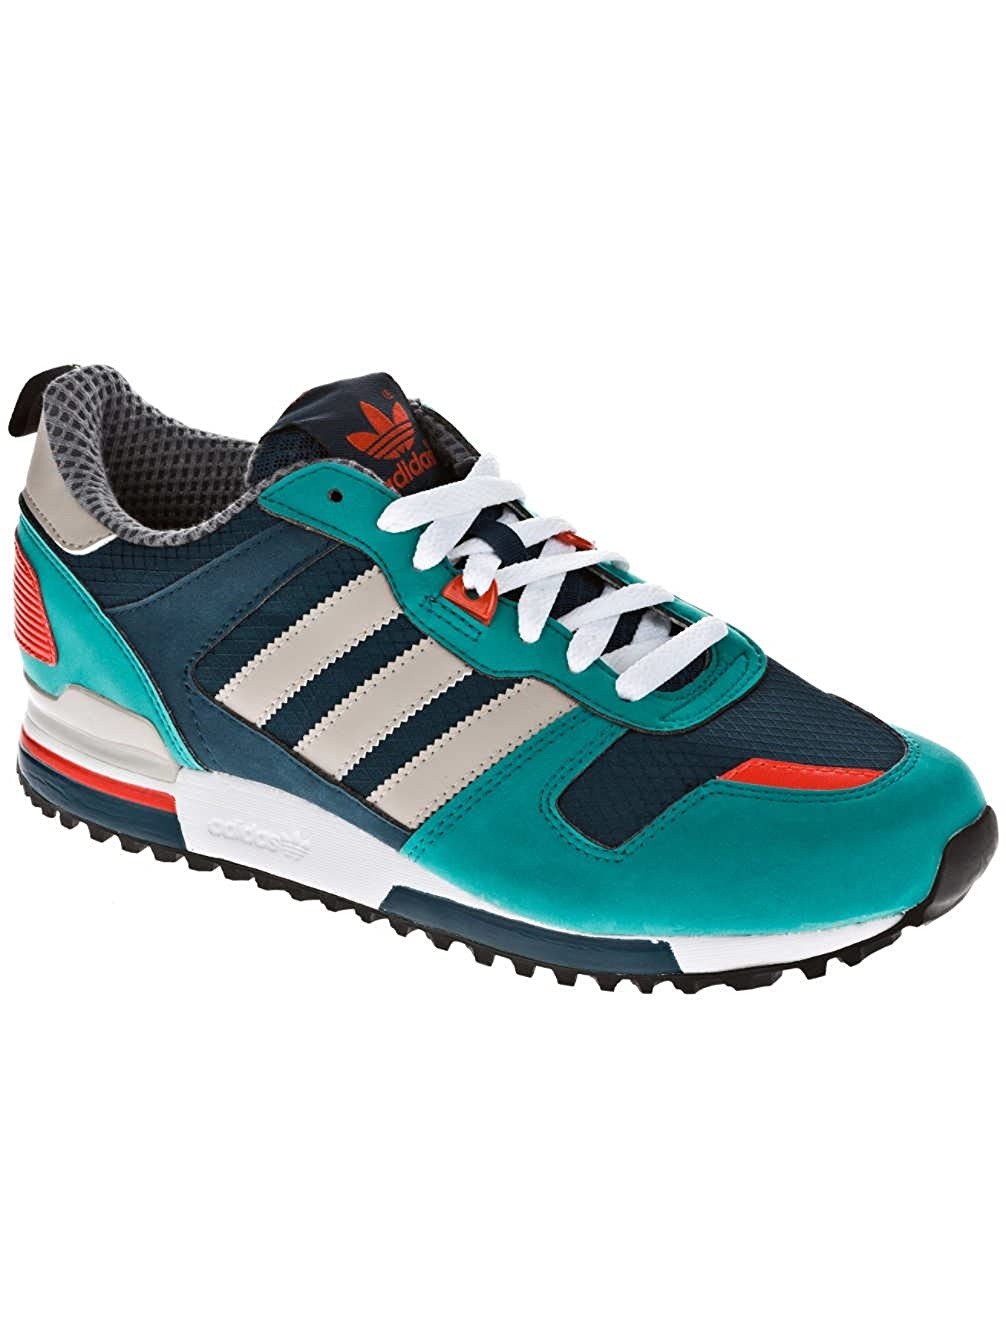 3a0ed9770 ... blue youth mens discount code for amazon adidas zx700 sea water g96520  running 37b0e 6c781 ...